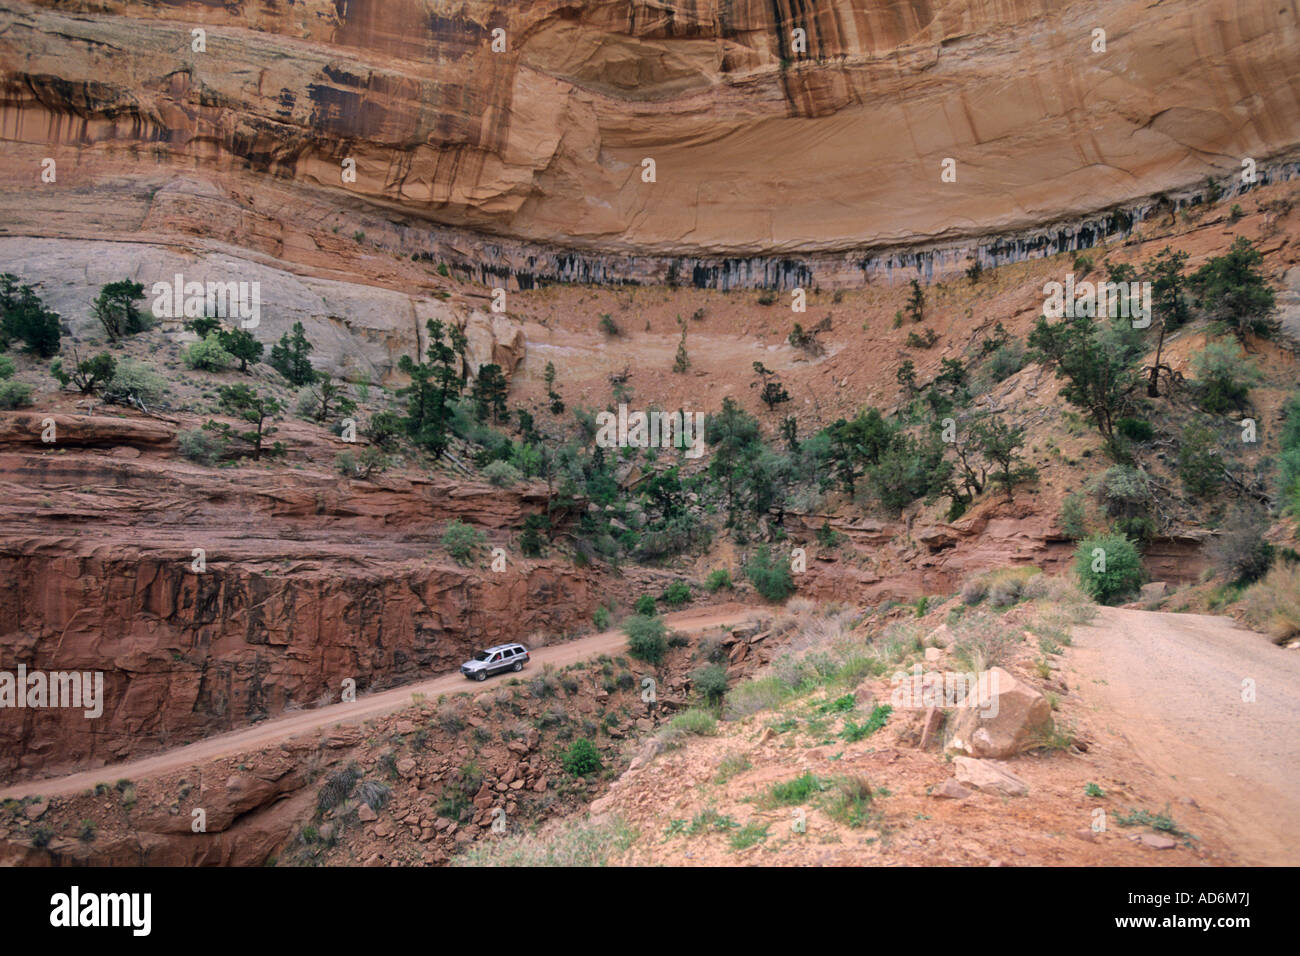 Driving on Shafer Trail Road into Shafer Canyon Island in the Sky District Canyonlands National Park UTAH Stock Photo